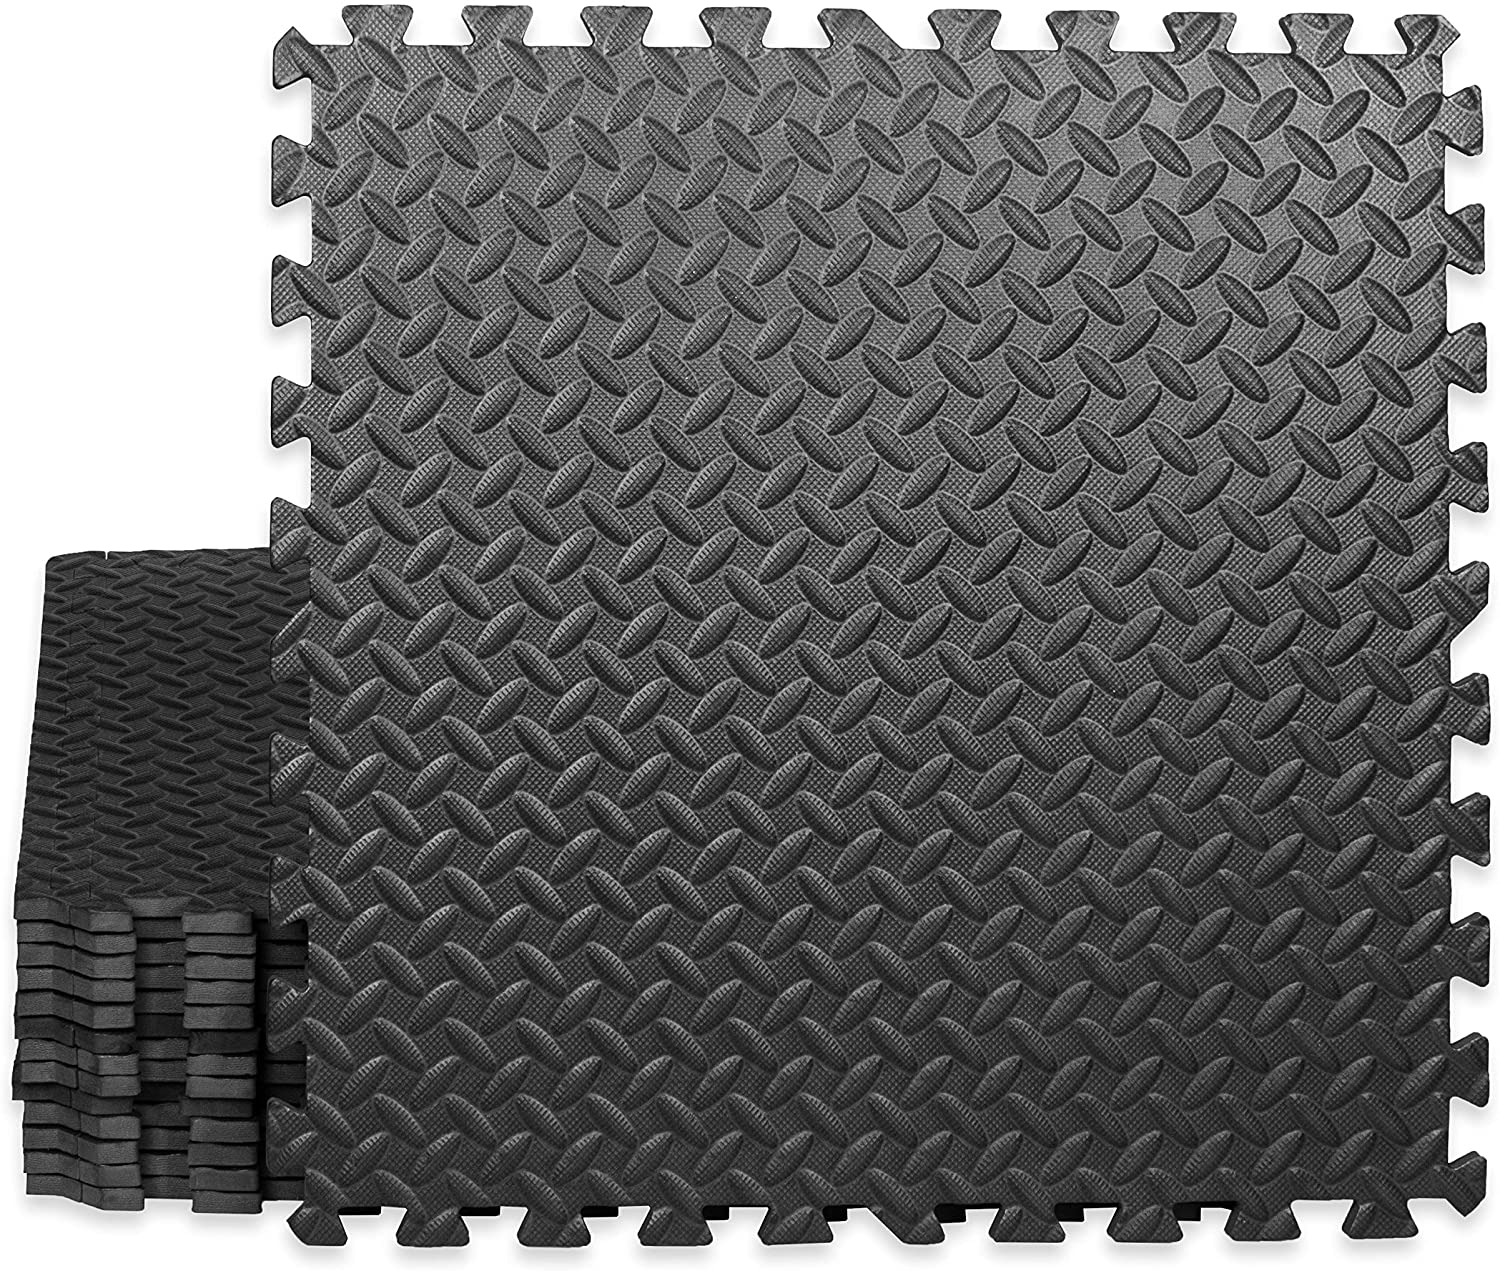 Play Platoon Gym Flooring Exercise Mats - Black Interlocking Workout Mats for Home Gym Floor, 1/2 Inch Thick Tiles, 48 square foot